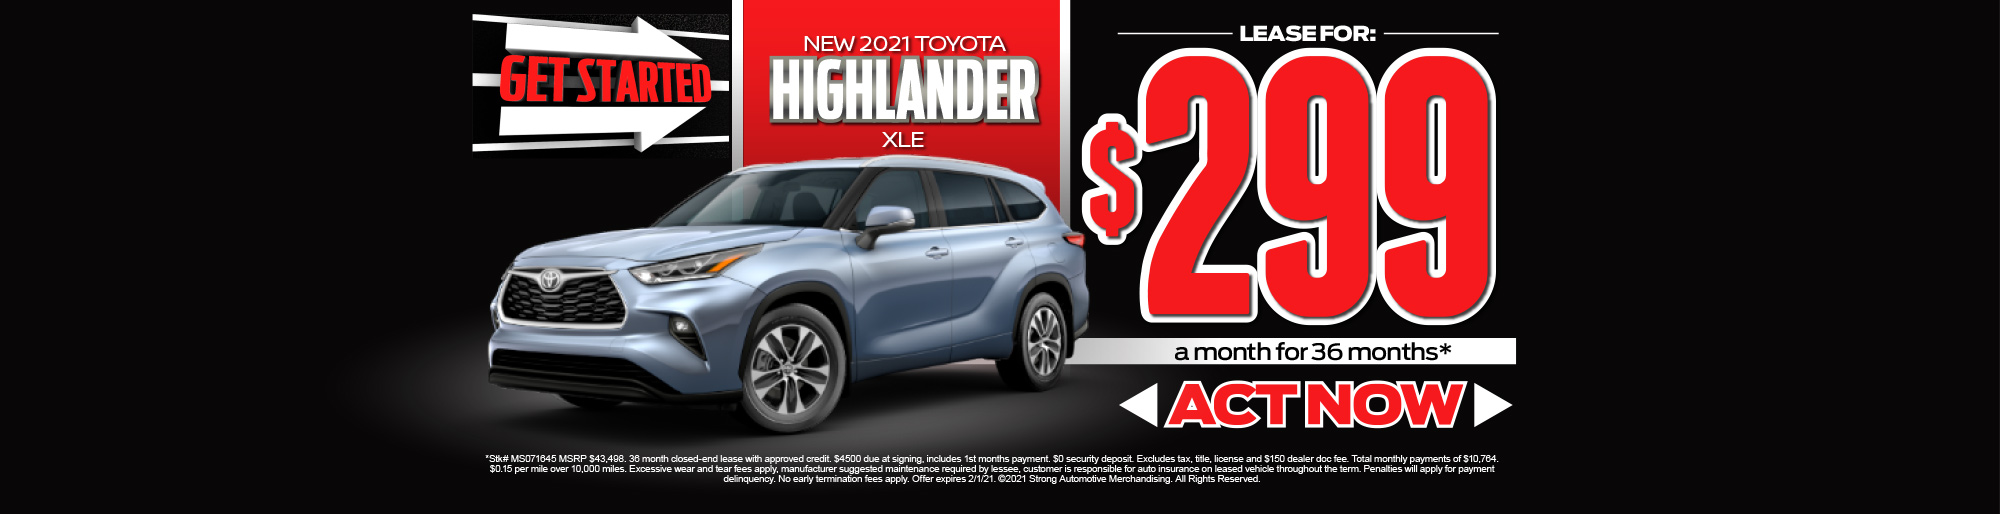 LEASE A NEW 2021 HIGHLANDER XLE FOR $299/MO* - ACT NOW